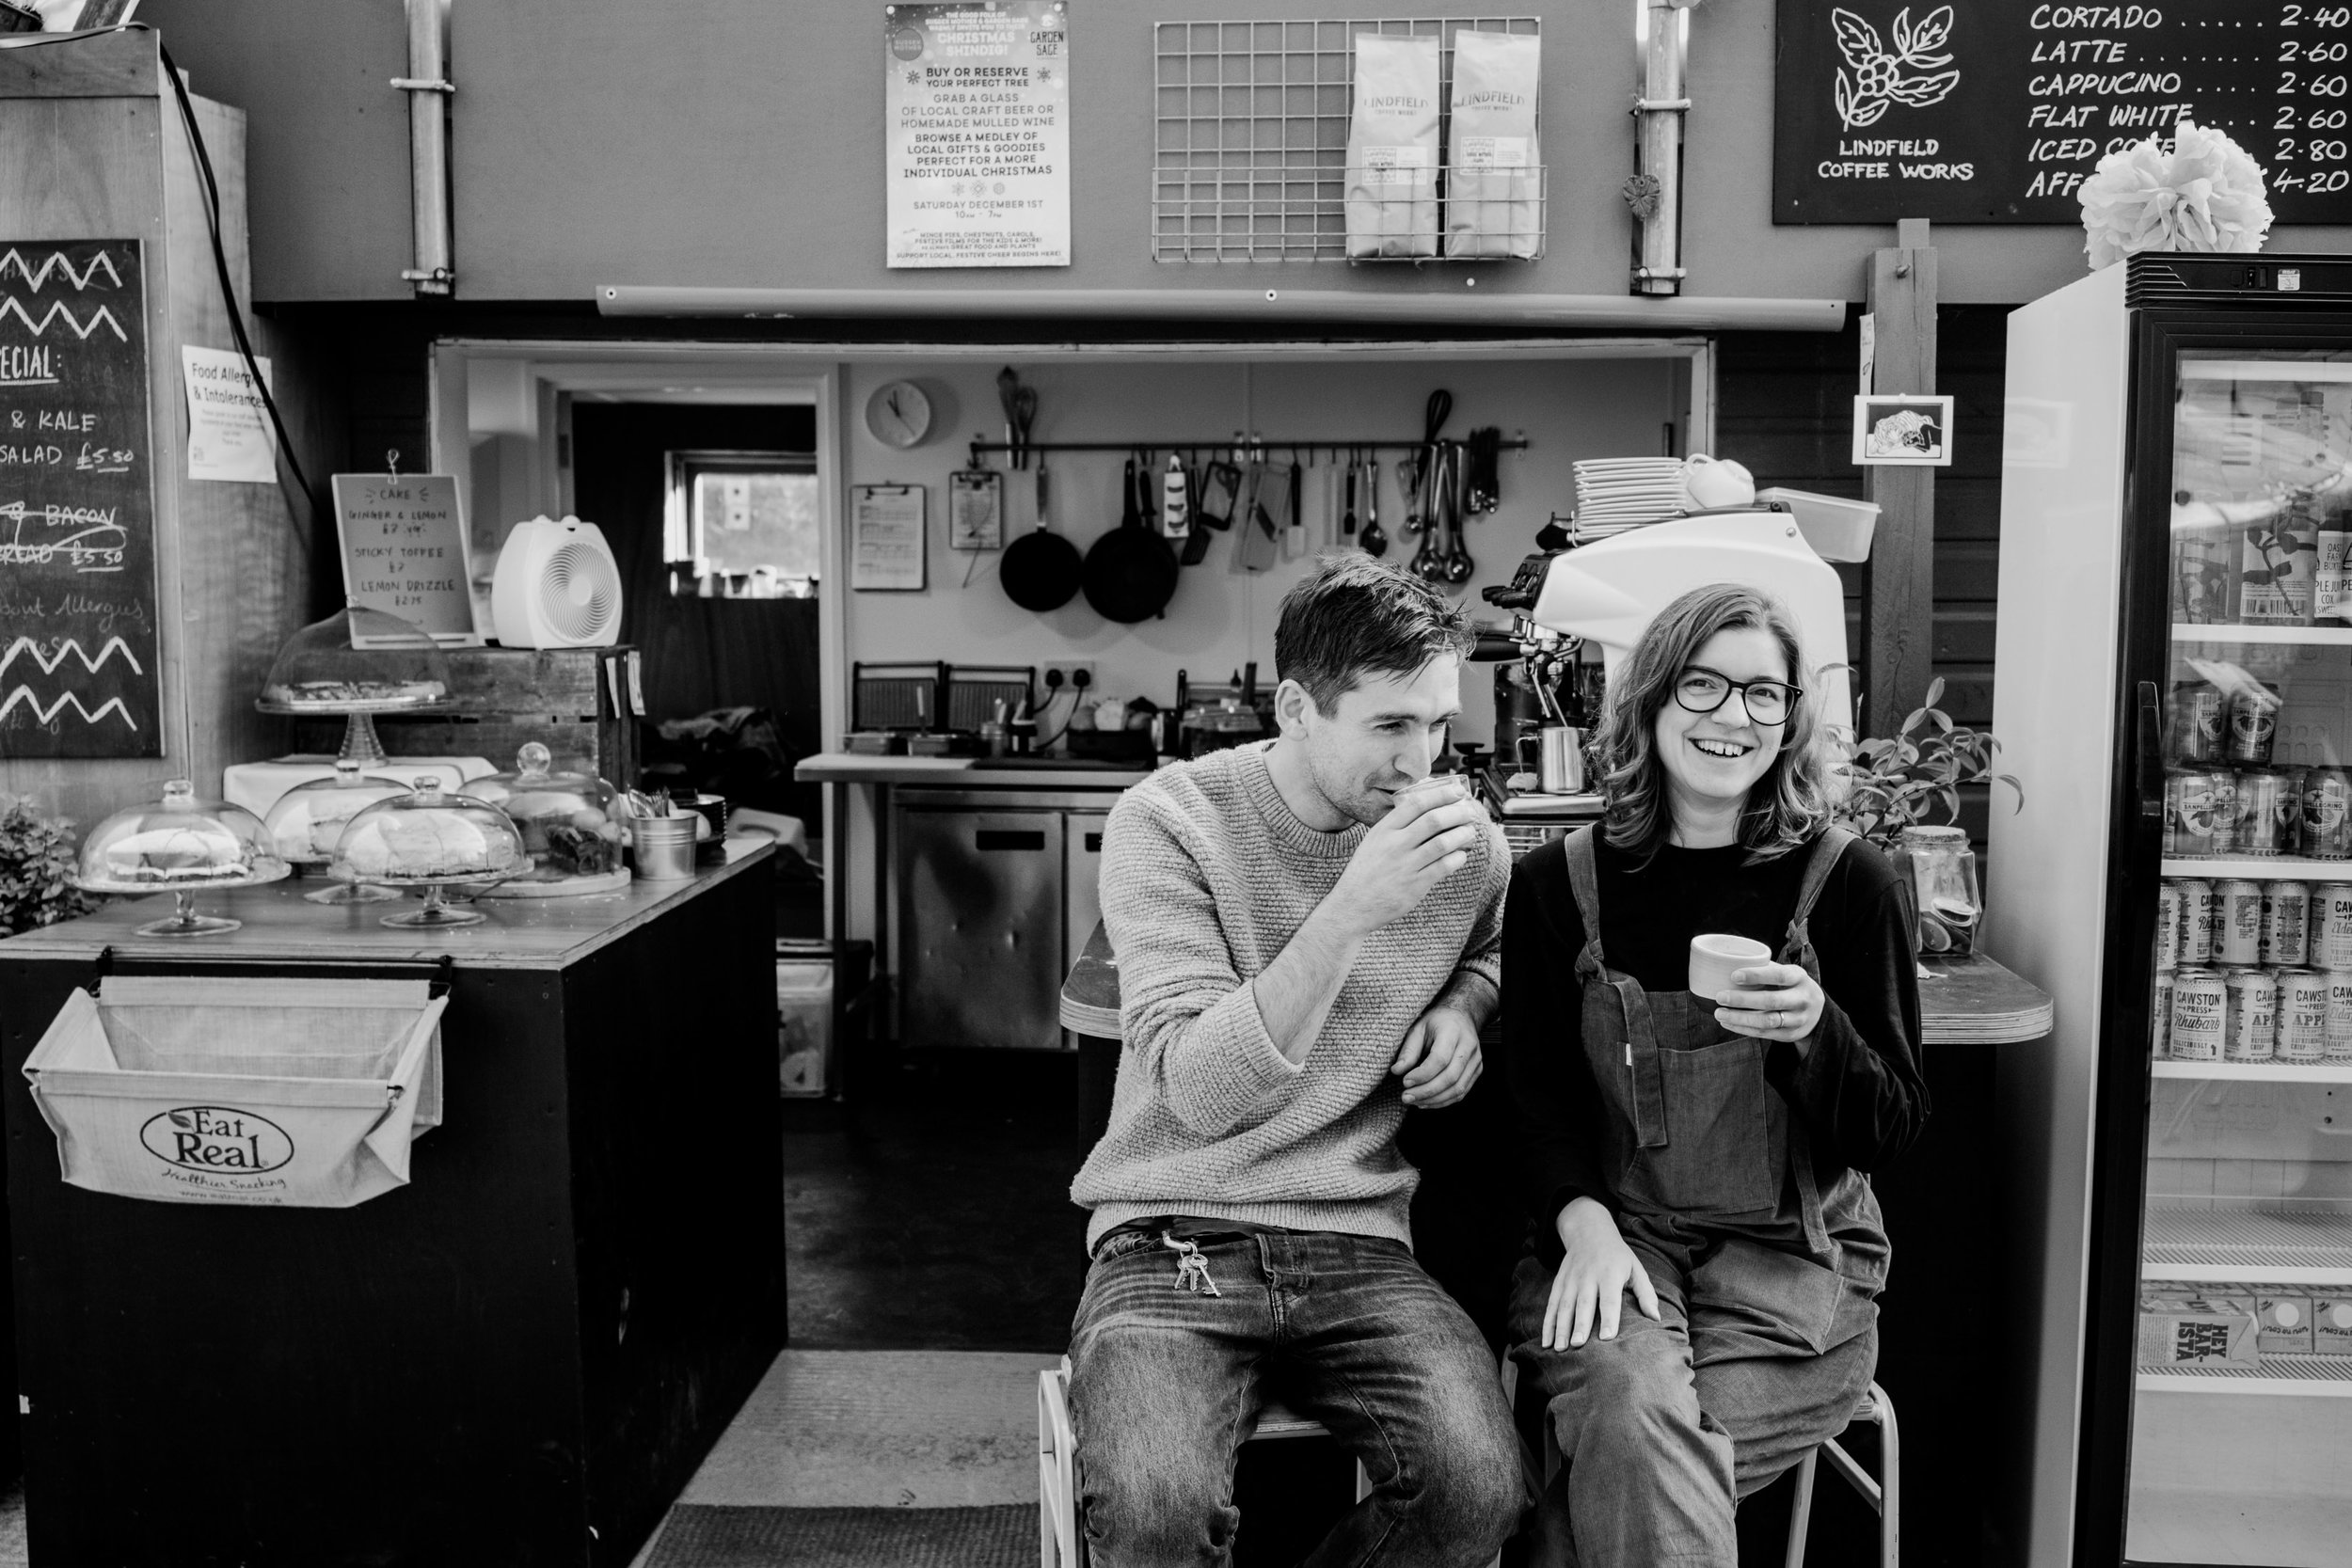 sussex-mother-owners-having-coffee-at-counter.jpg